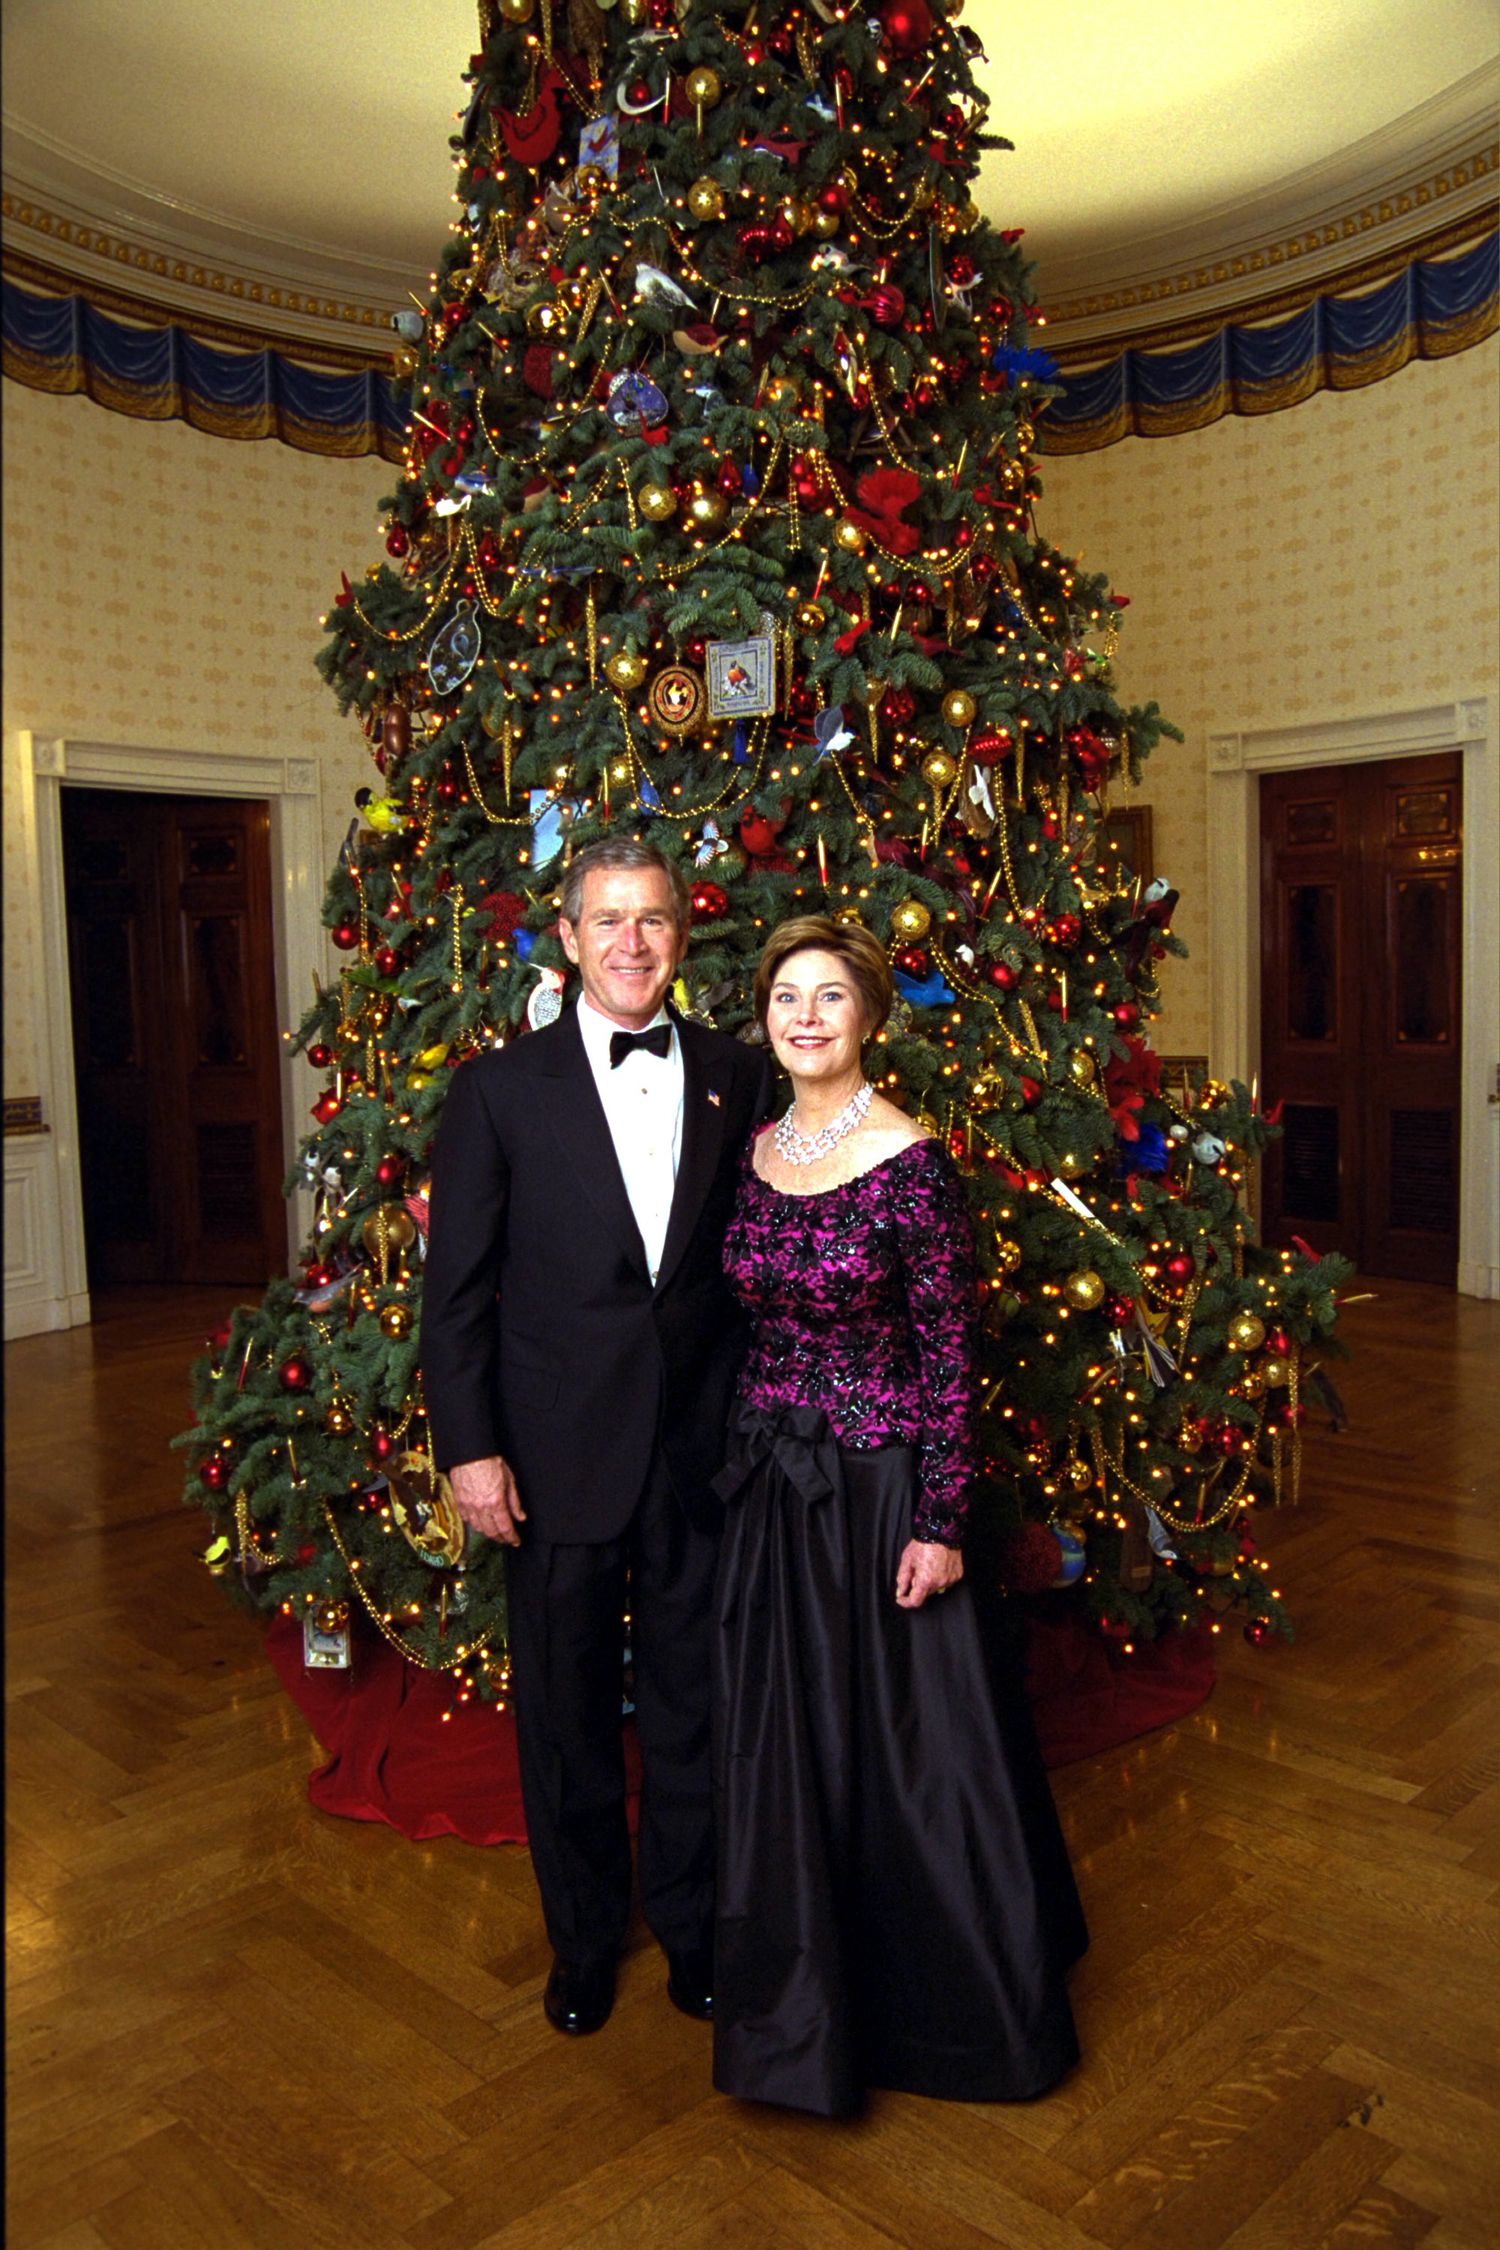 A Look Back At 80 Years Of Christmas At The White House White House Christmas Tree White House Christmas Blue Room Christmas Tree